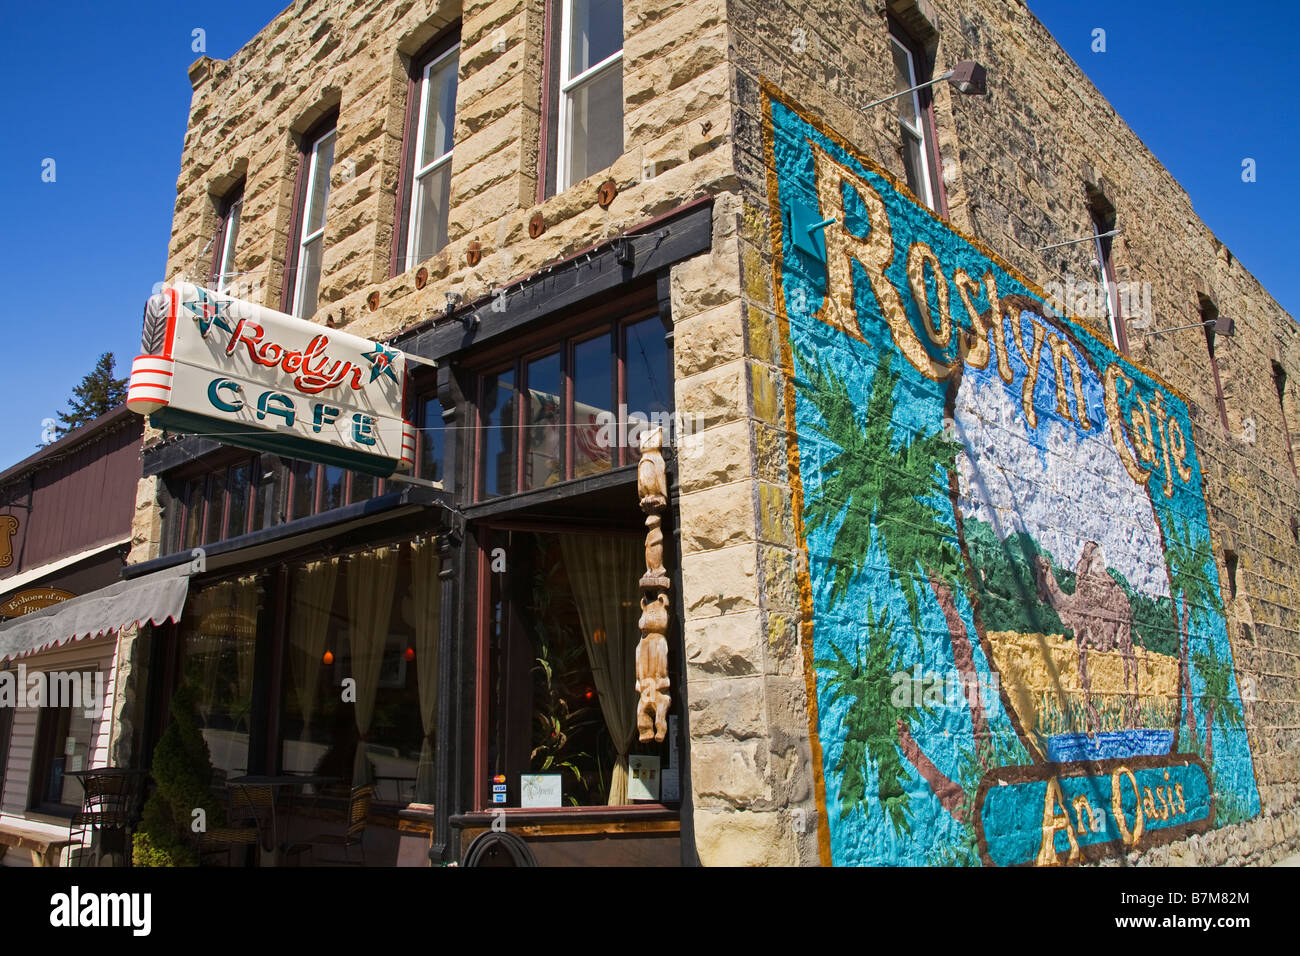 Roslyn Cafe Historic Roslyn Washington State USA - Stock Image